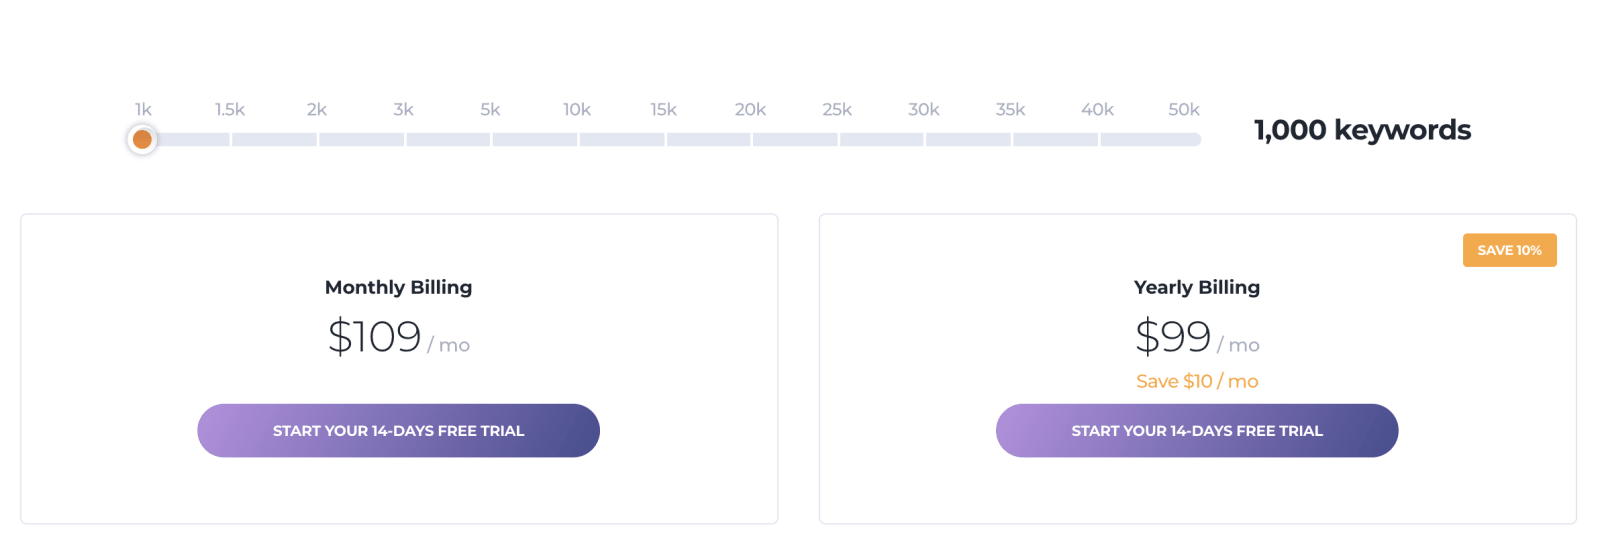 AccuRanker Pricing and Cost